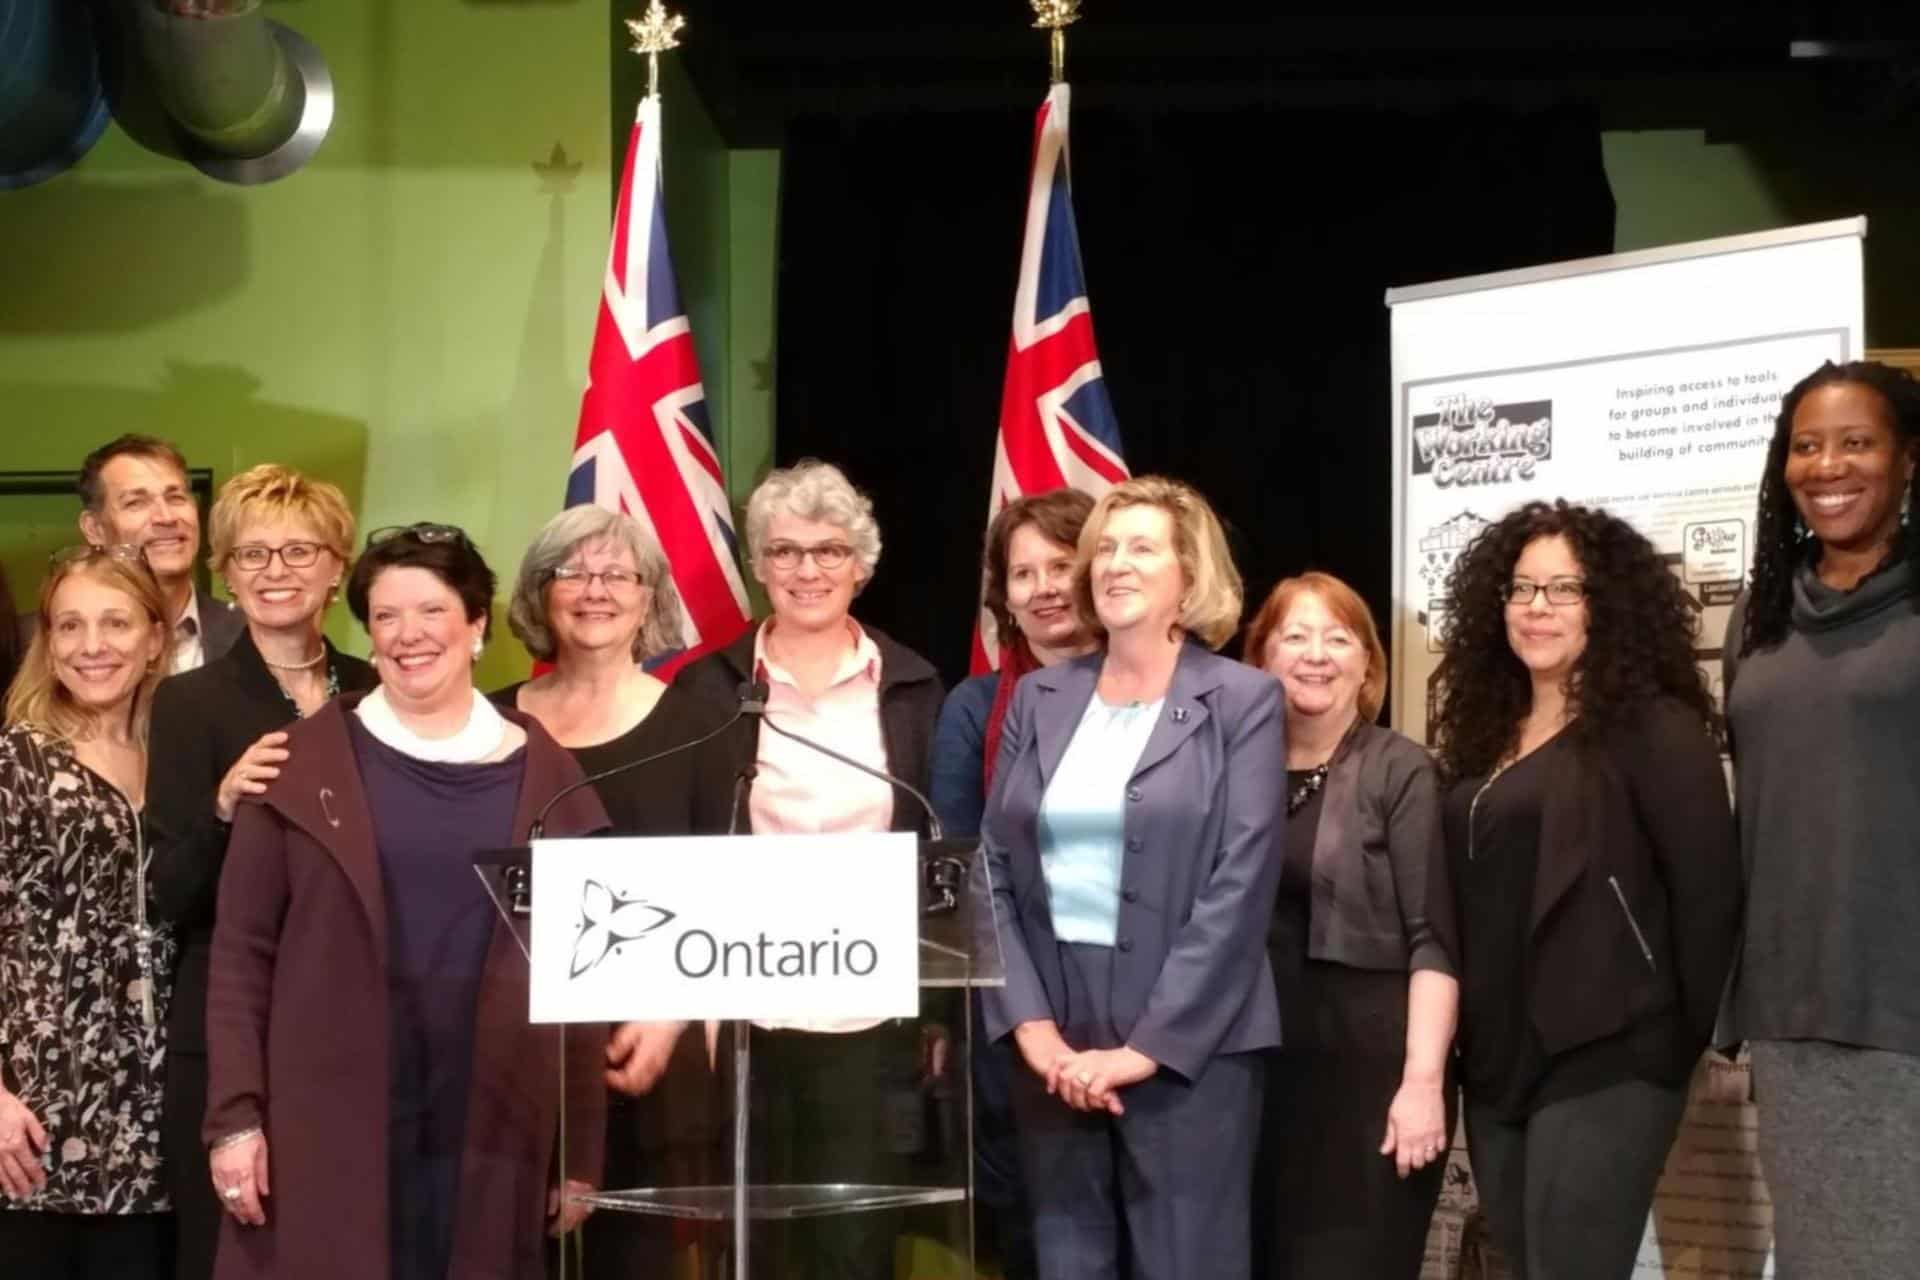 Ontario Financial empowerment champions